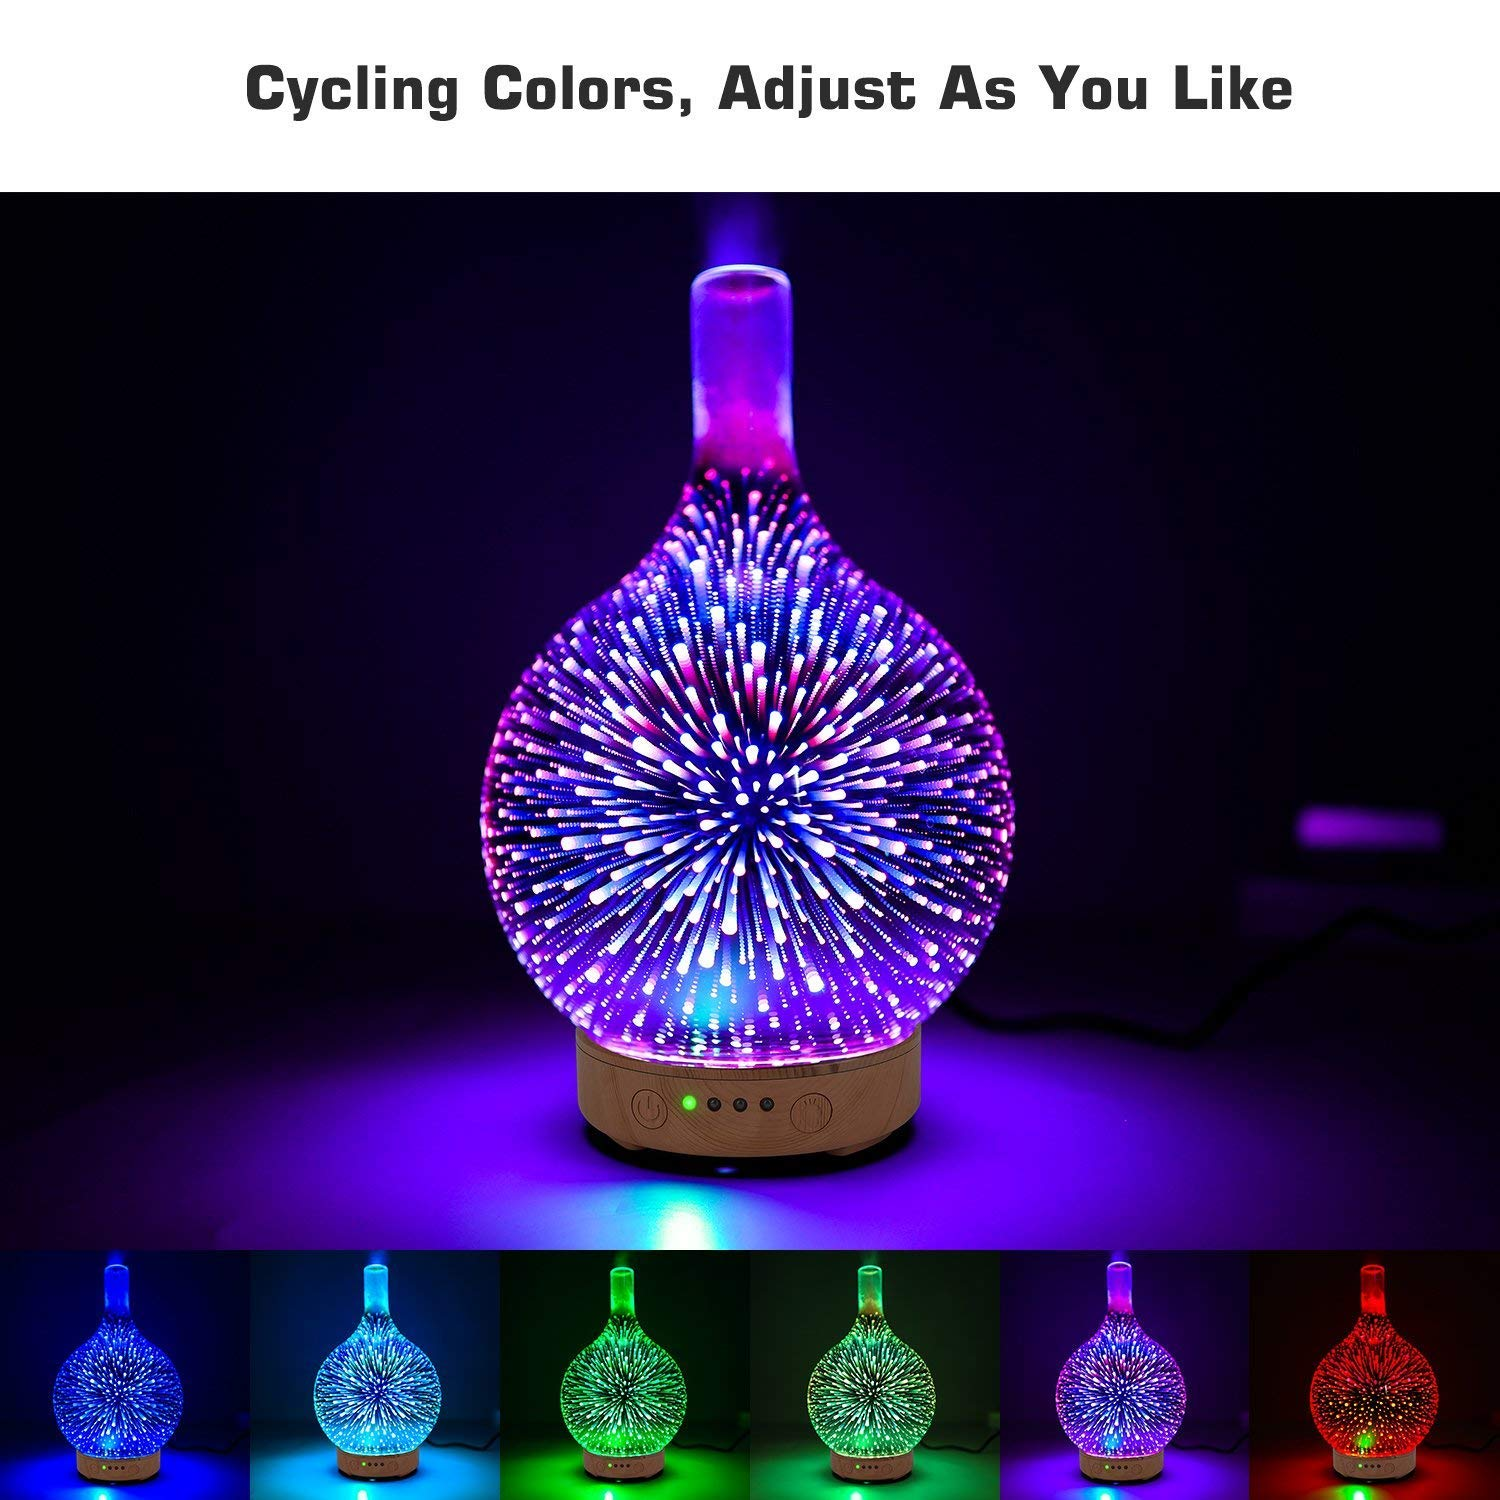 LENRUE Essential Oil Diffuser, 100Ml Aromatherapy Mist Humidifier, Ultrasonic Air Purifier With 3D Effect Night Light With 7 Color Changing Leds, Waterless Auto-Off, Timer Setting LENRUE®